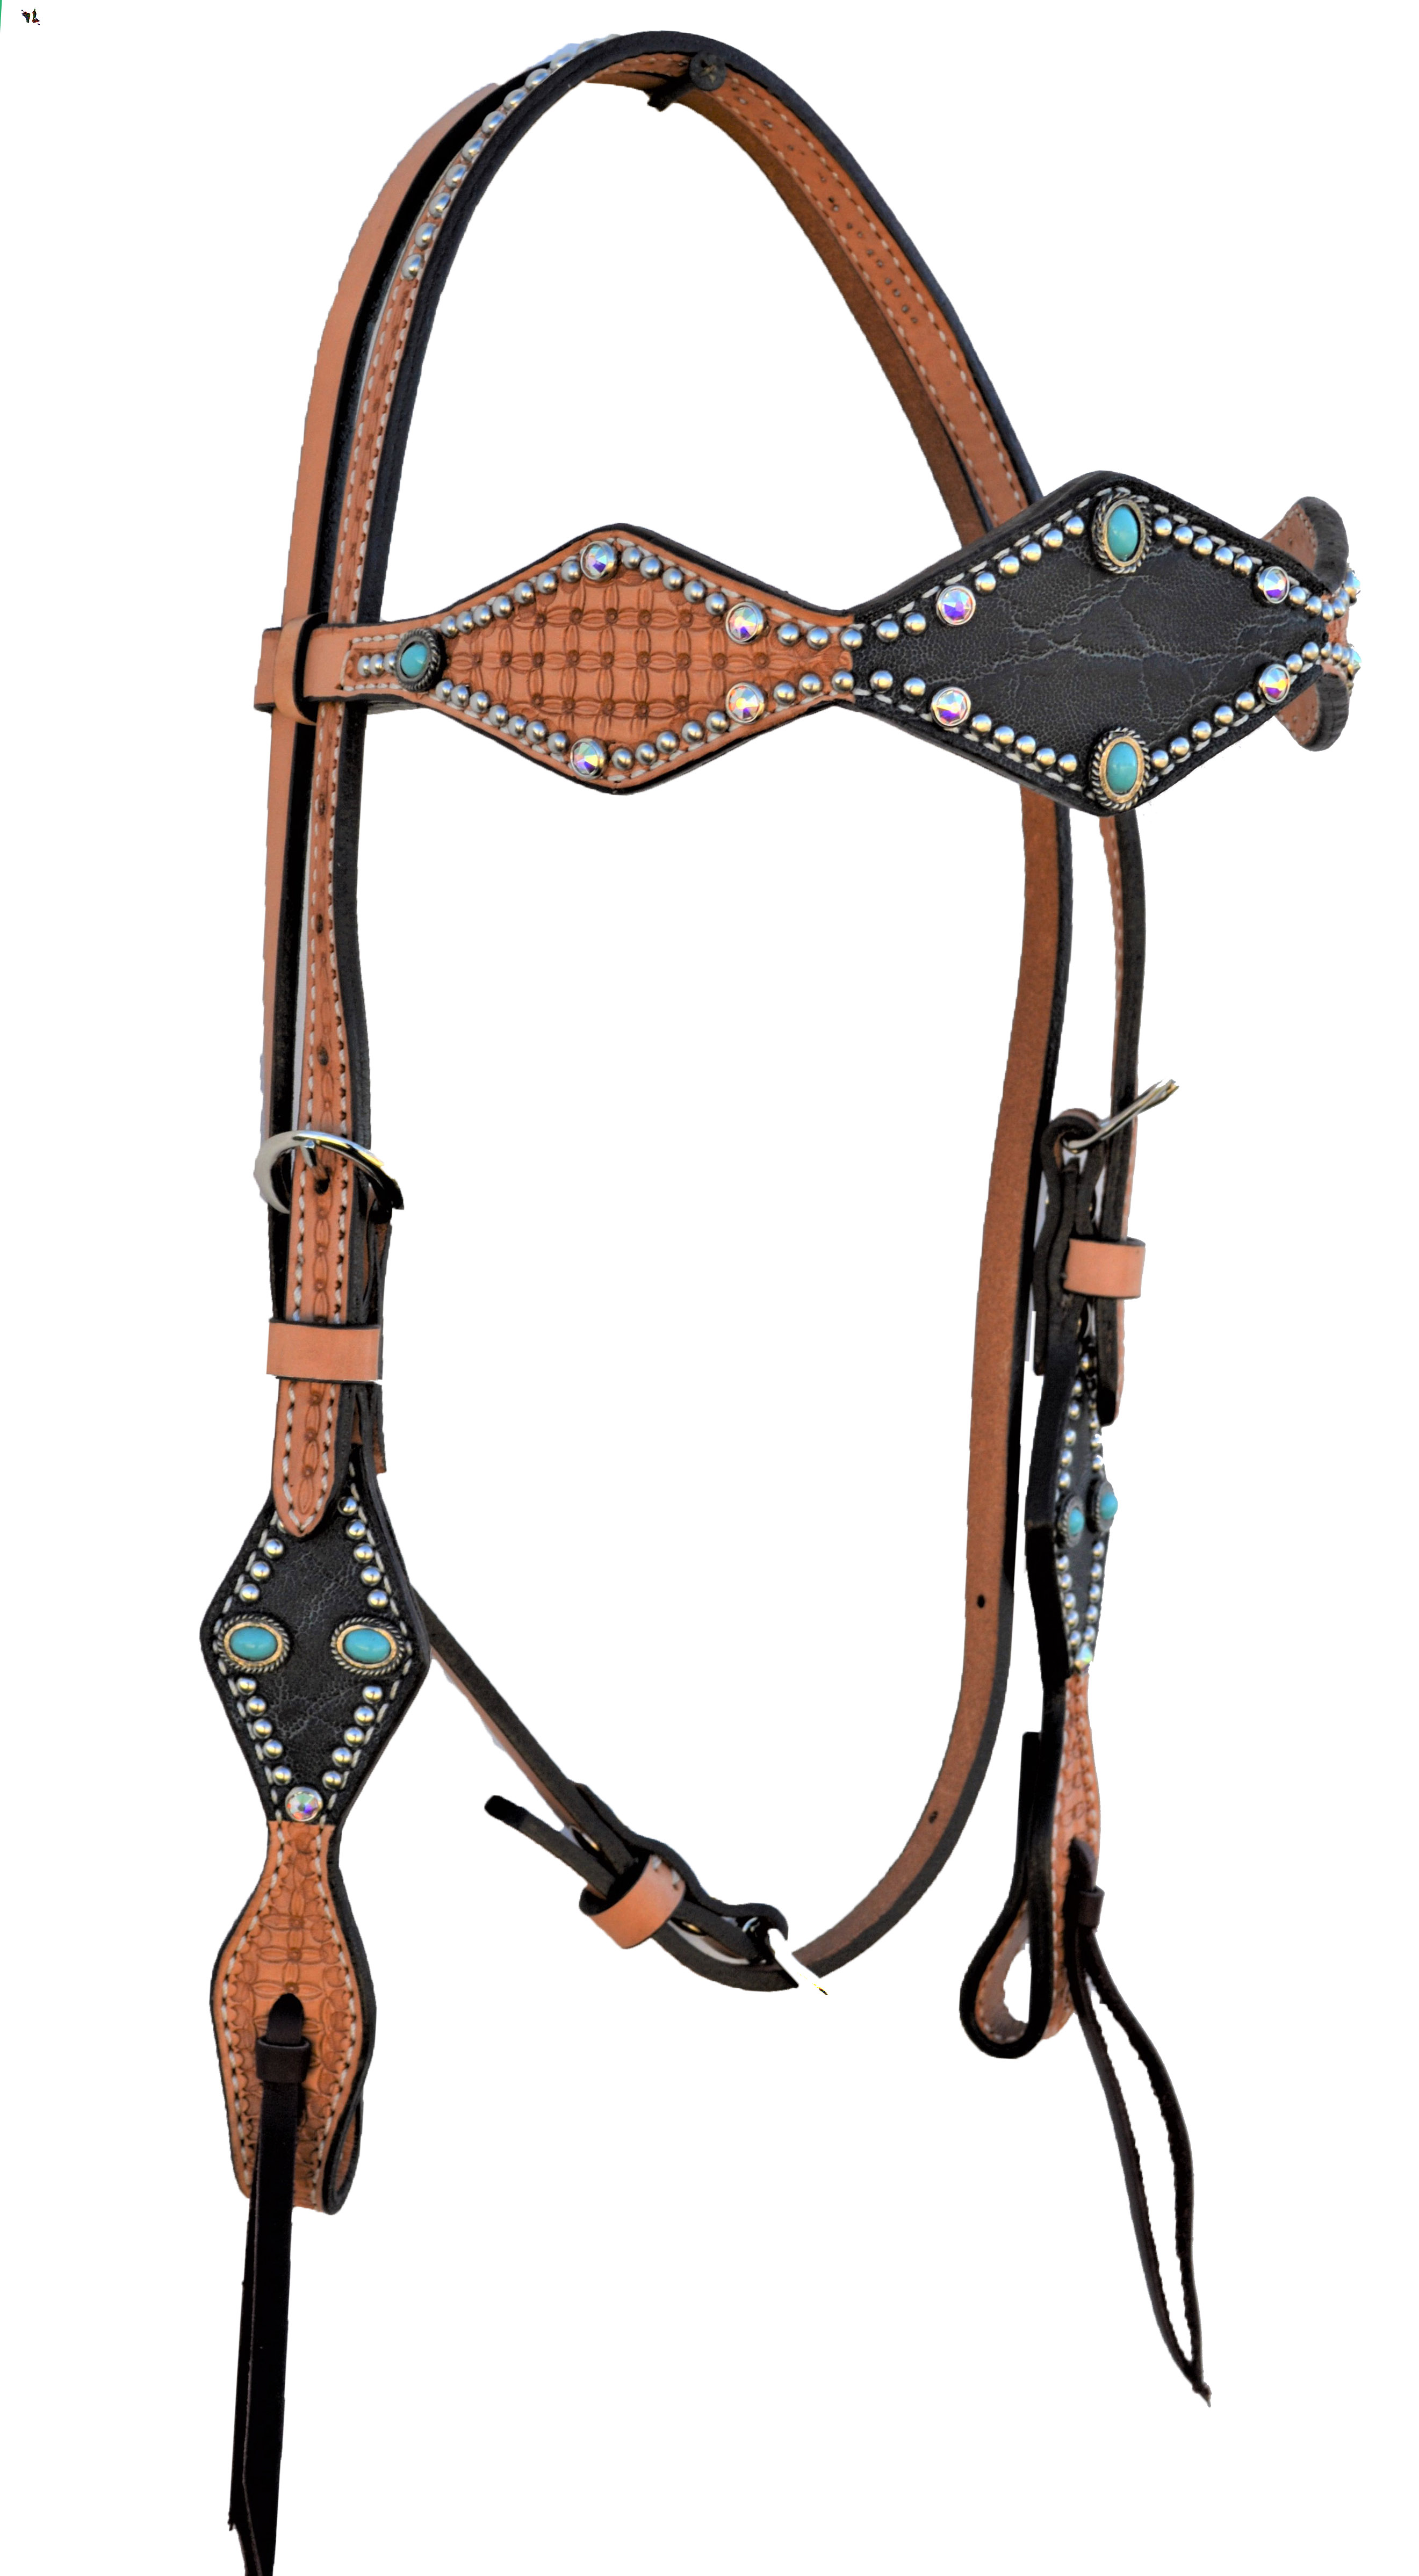 2046-GE DIAMOND CUT HEADSTALL WITH GRAPHITE ELEPHANT OVERLAY AND TURQUOISE SPOTTING